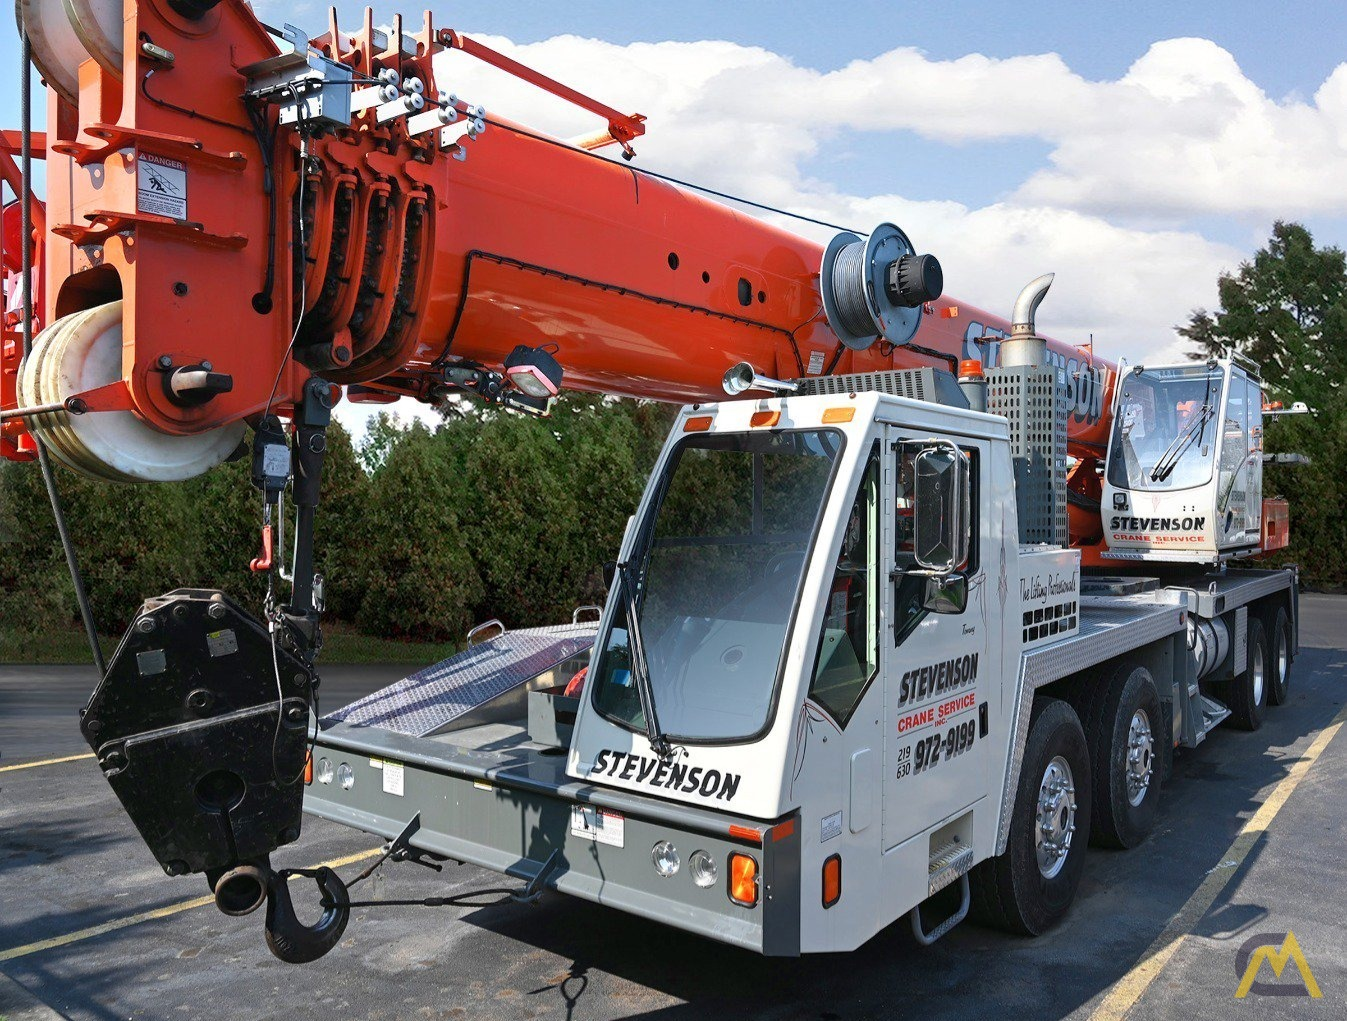 2012 Grove TMS9000E 110-Ton Hydraulic Truck Crane  Motivated Seller, All Reasonable Offers Considered 0